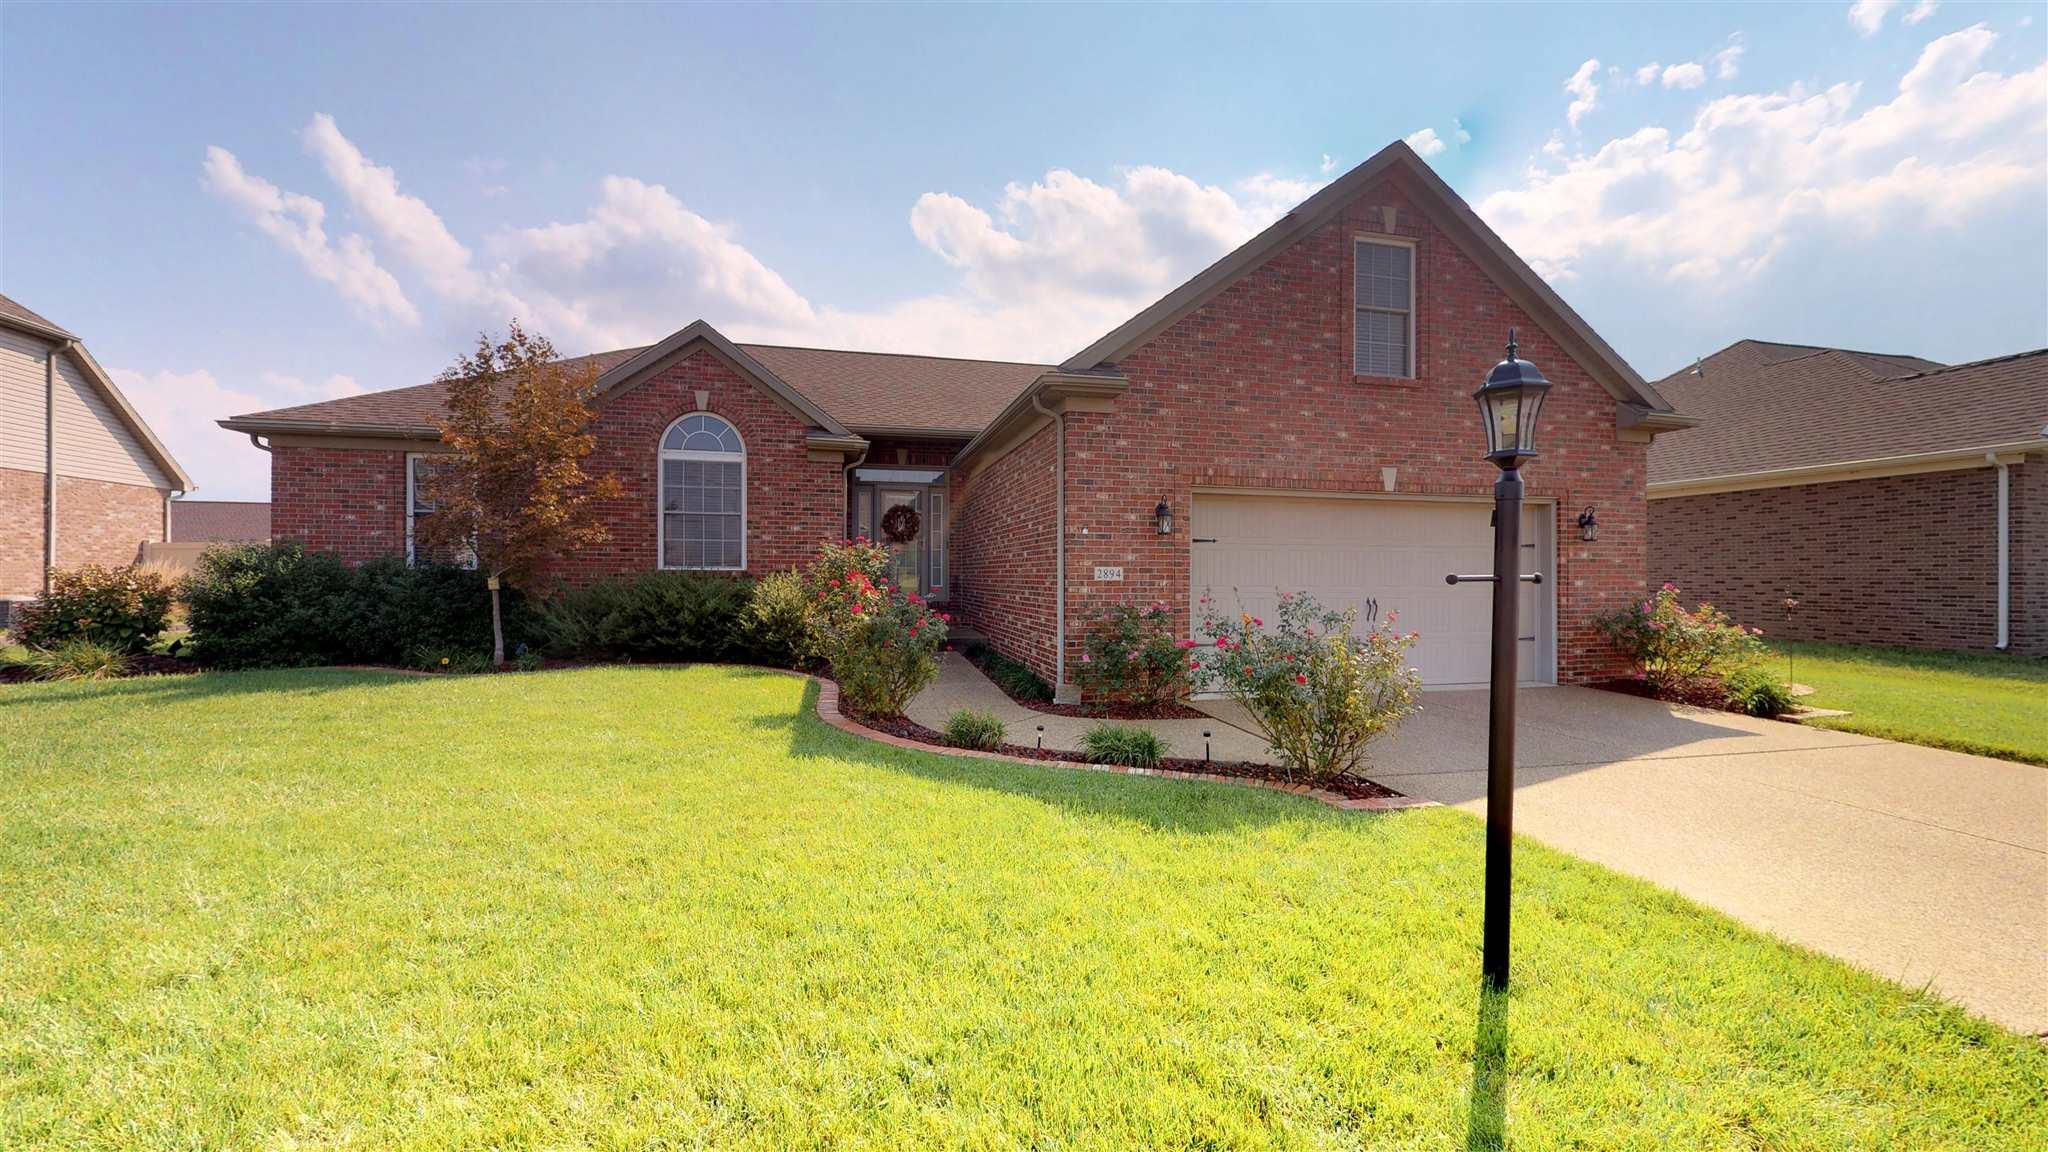 Open House Sunday 9/23/2018 1:00 - 3:00.  Fantastic ranch with a large bonus room.  Kitchen is spacious with great prep space and counter area, custom backsplash, lots of cabinets. Raised counter bar with room for barstools.  Kitchen is open to the family room and the extra large breakfast/dining space is all right there.  Plenty of room for formal dining furniture if you need it.  Great room features a vaulted ceiling with CF and a gas log fireplace with newly added decorative tile.   The back yard area has been upgraded by the current owner with plantings, extra attention to the deck system, added a stone patio & firepit area.  The master suite details beautiful tray ceiling, an over-sized walk-in closet and a large full bath with a double-sink vanity, walk-in shower, and large soaking tub. The two additional bedrooms offer nice sized closets and tremendous natural light. The main level of the home is completed by an oversized laundry room with a large closet, cabinetry for storage, and a utility sink. Upstairs the bonus/bedroom is oversized because the garage is so big.  There is attic access from the bonus room.   Bonus room does not have an actual closet.  The builder built this home for himself and there are lots of little upgrades that builders normally do for themselves including a roomier 25x25 garage.   Come see, you will be delighted.  Excluded: washer/dryer & curtains/hardware